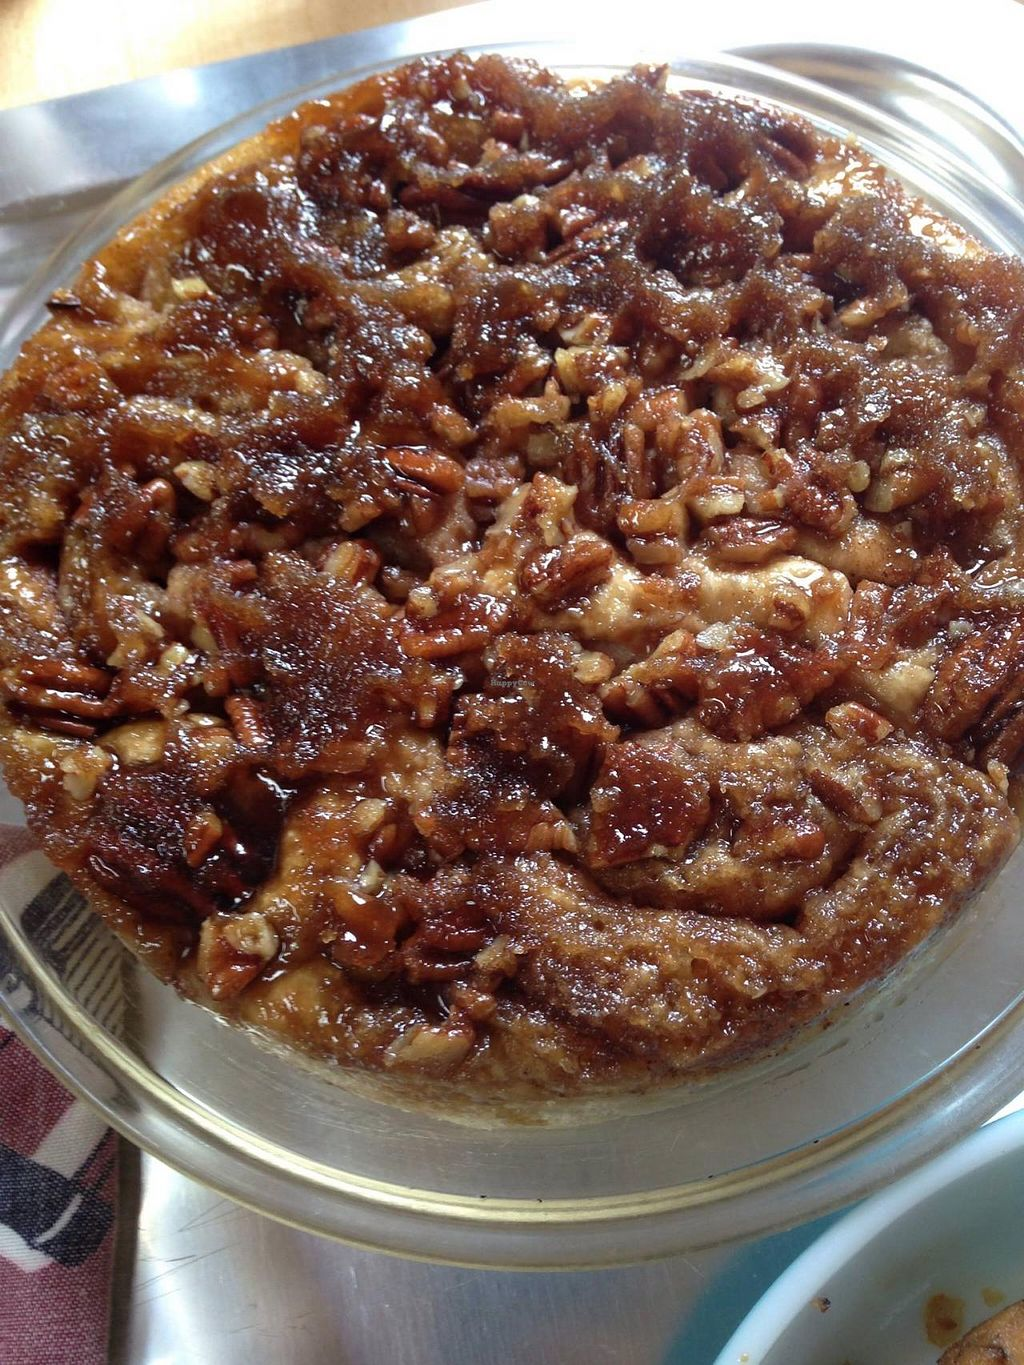 """Photo of Someday Farm Vegan Bed and Breakfast  by <a href=""""/members/profile/BethanyDavis"""">BethanyDavis</a> <br/>Breakfast!  <br/> August 3, 2014  - <a href='/contact/abuse/image/30230/75901'>Report</a>"""